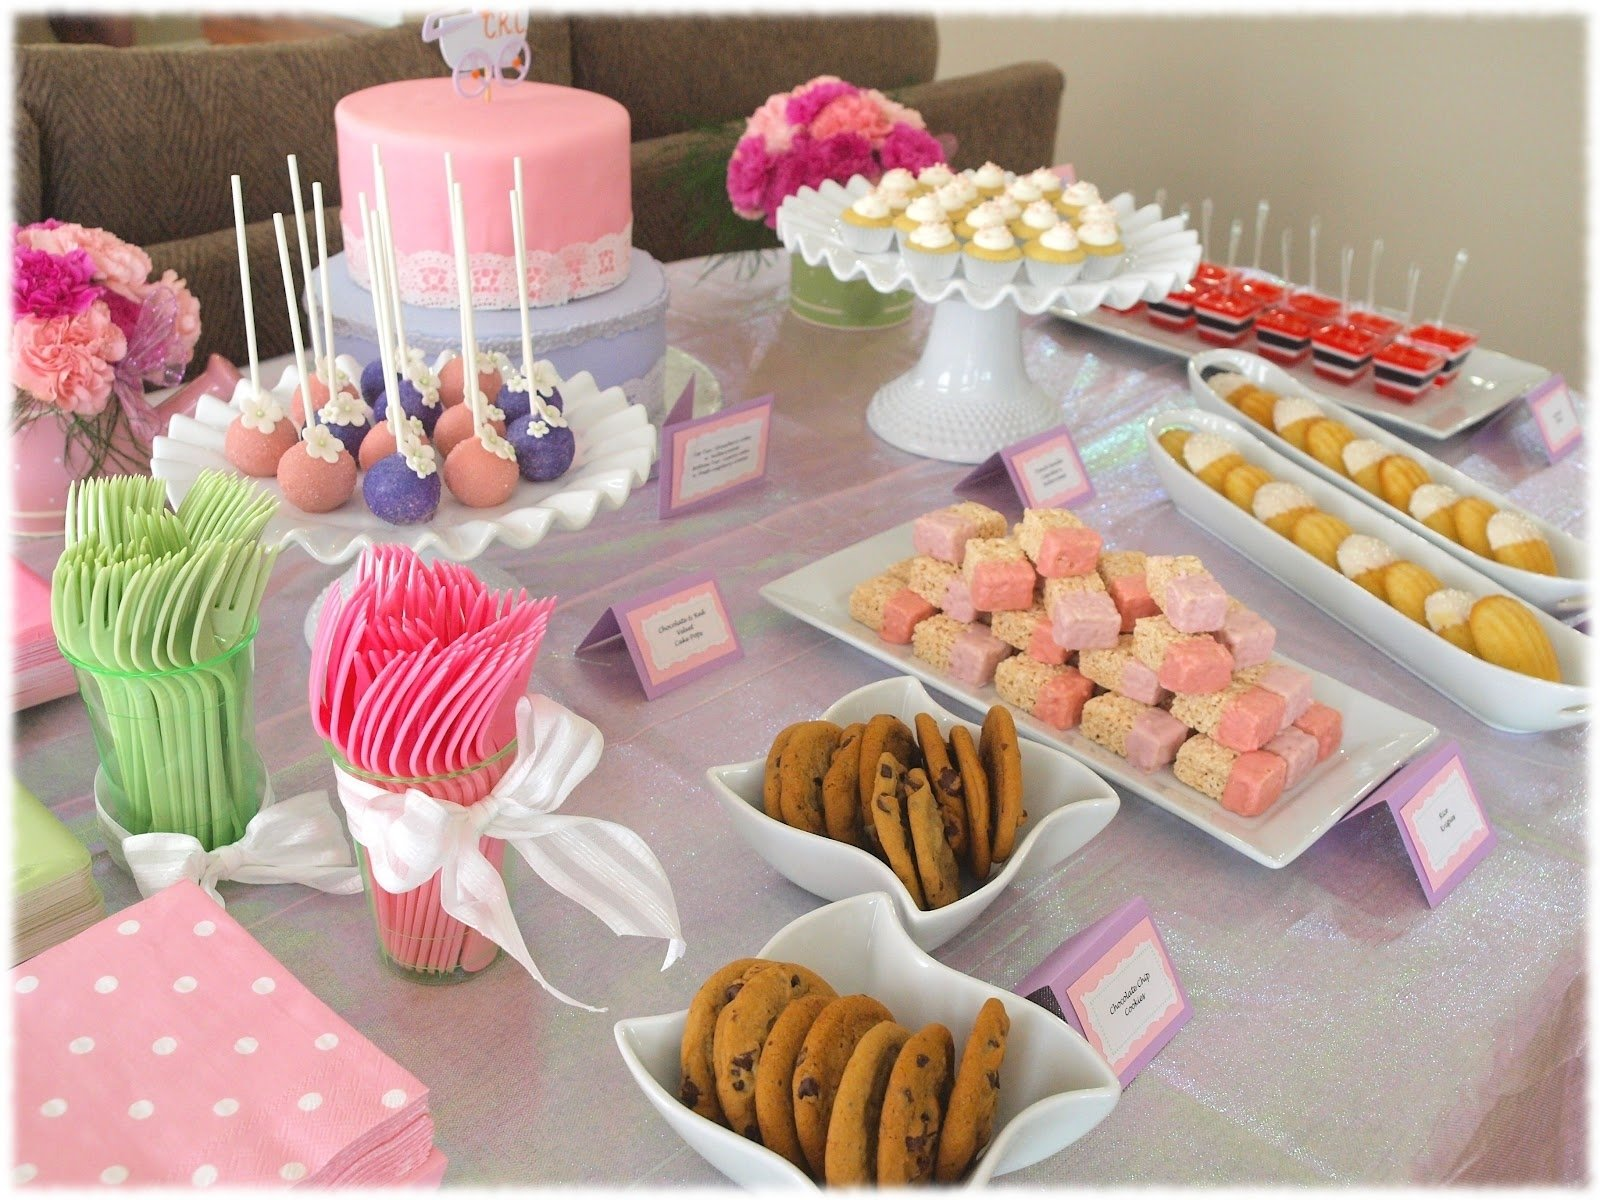 10 Unique Baby Shower Dessert Table Ideas dessert table at baby shower dessert table at baby shower decor 2020